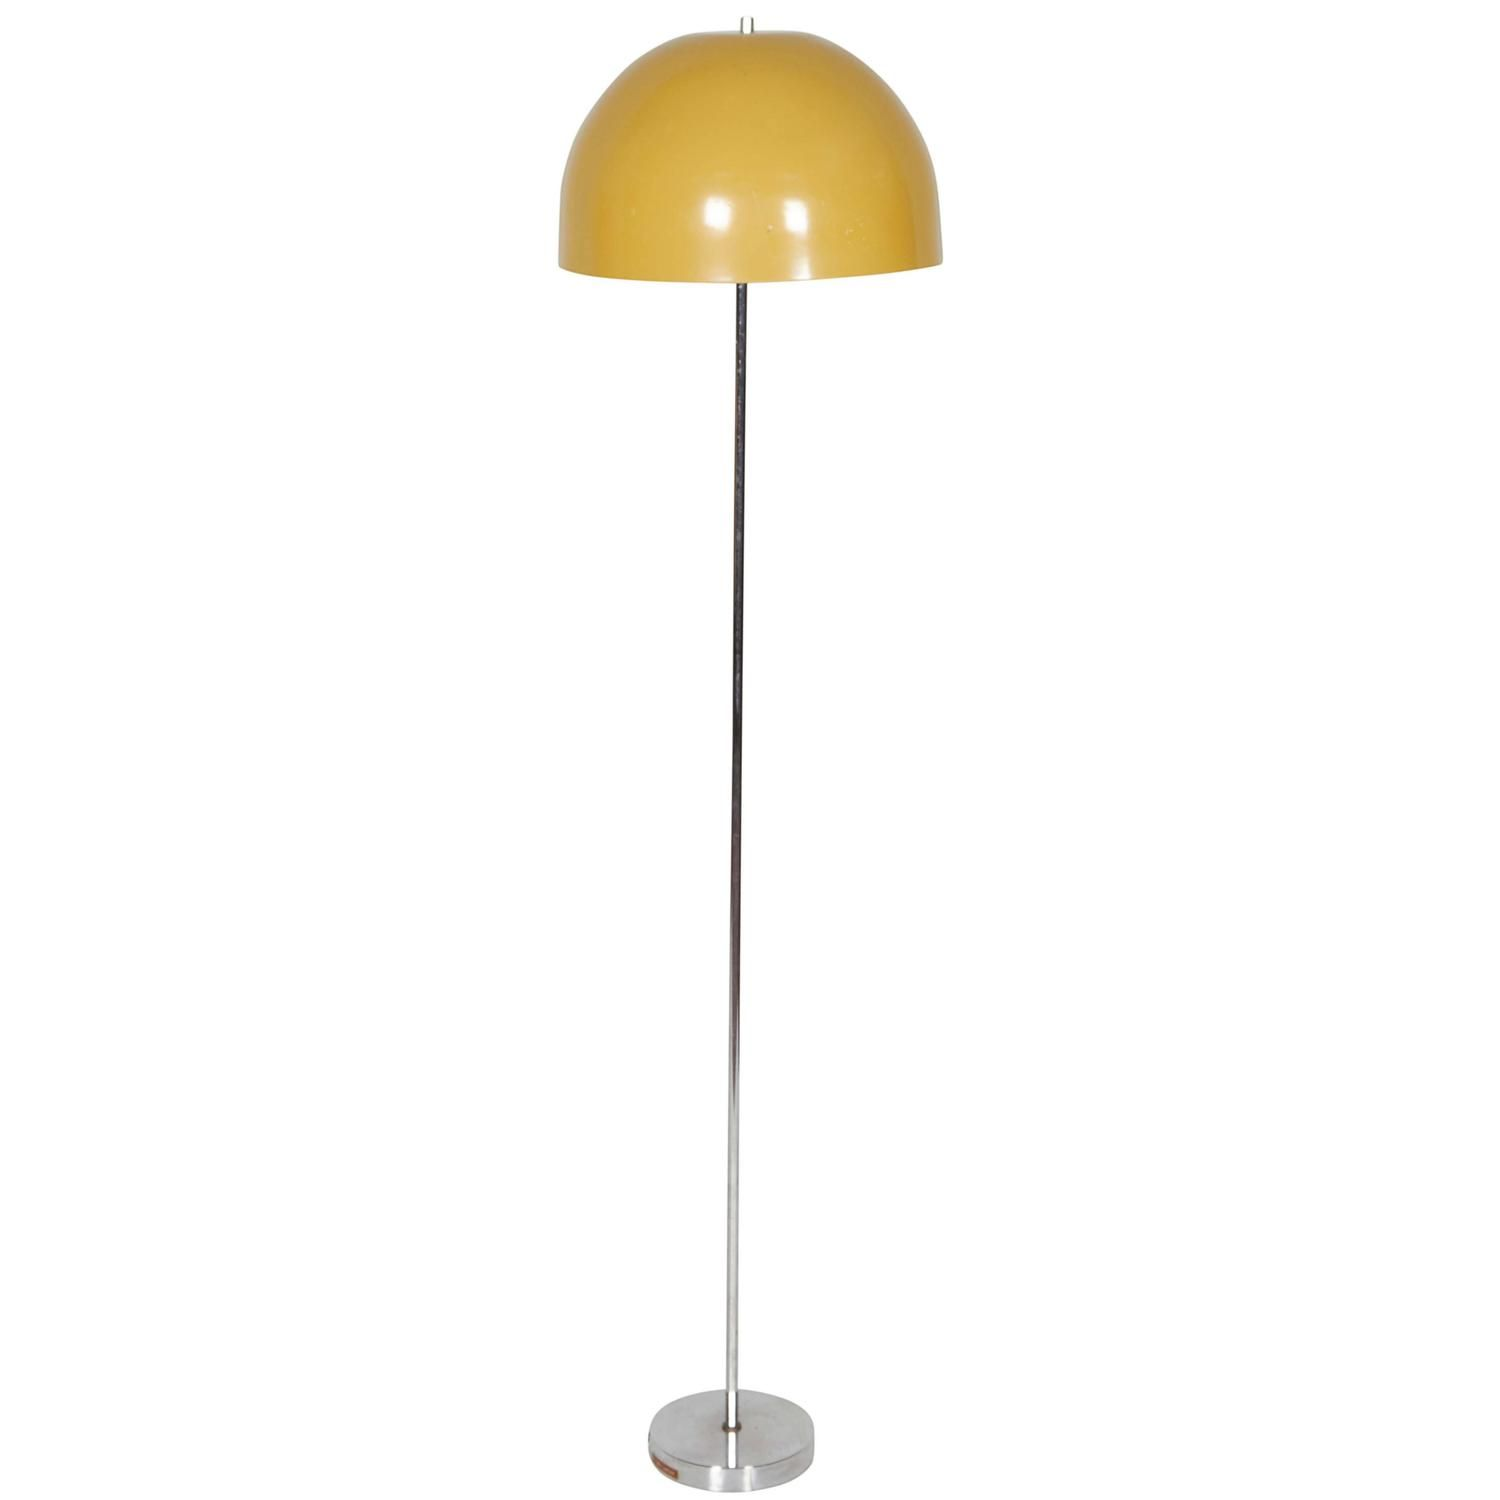 1960s Dome Shade Floor Lamp